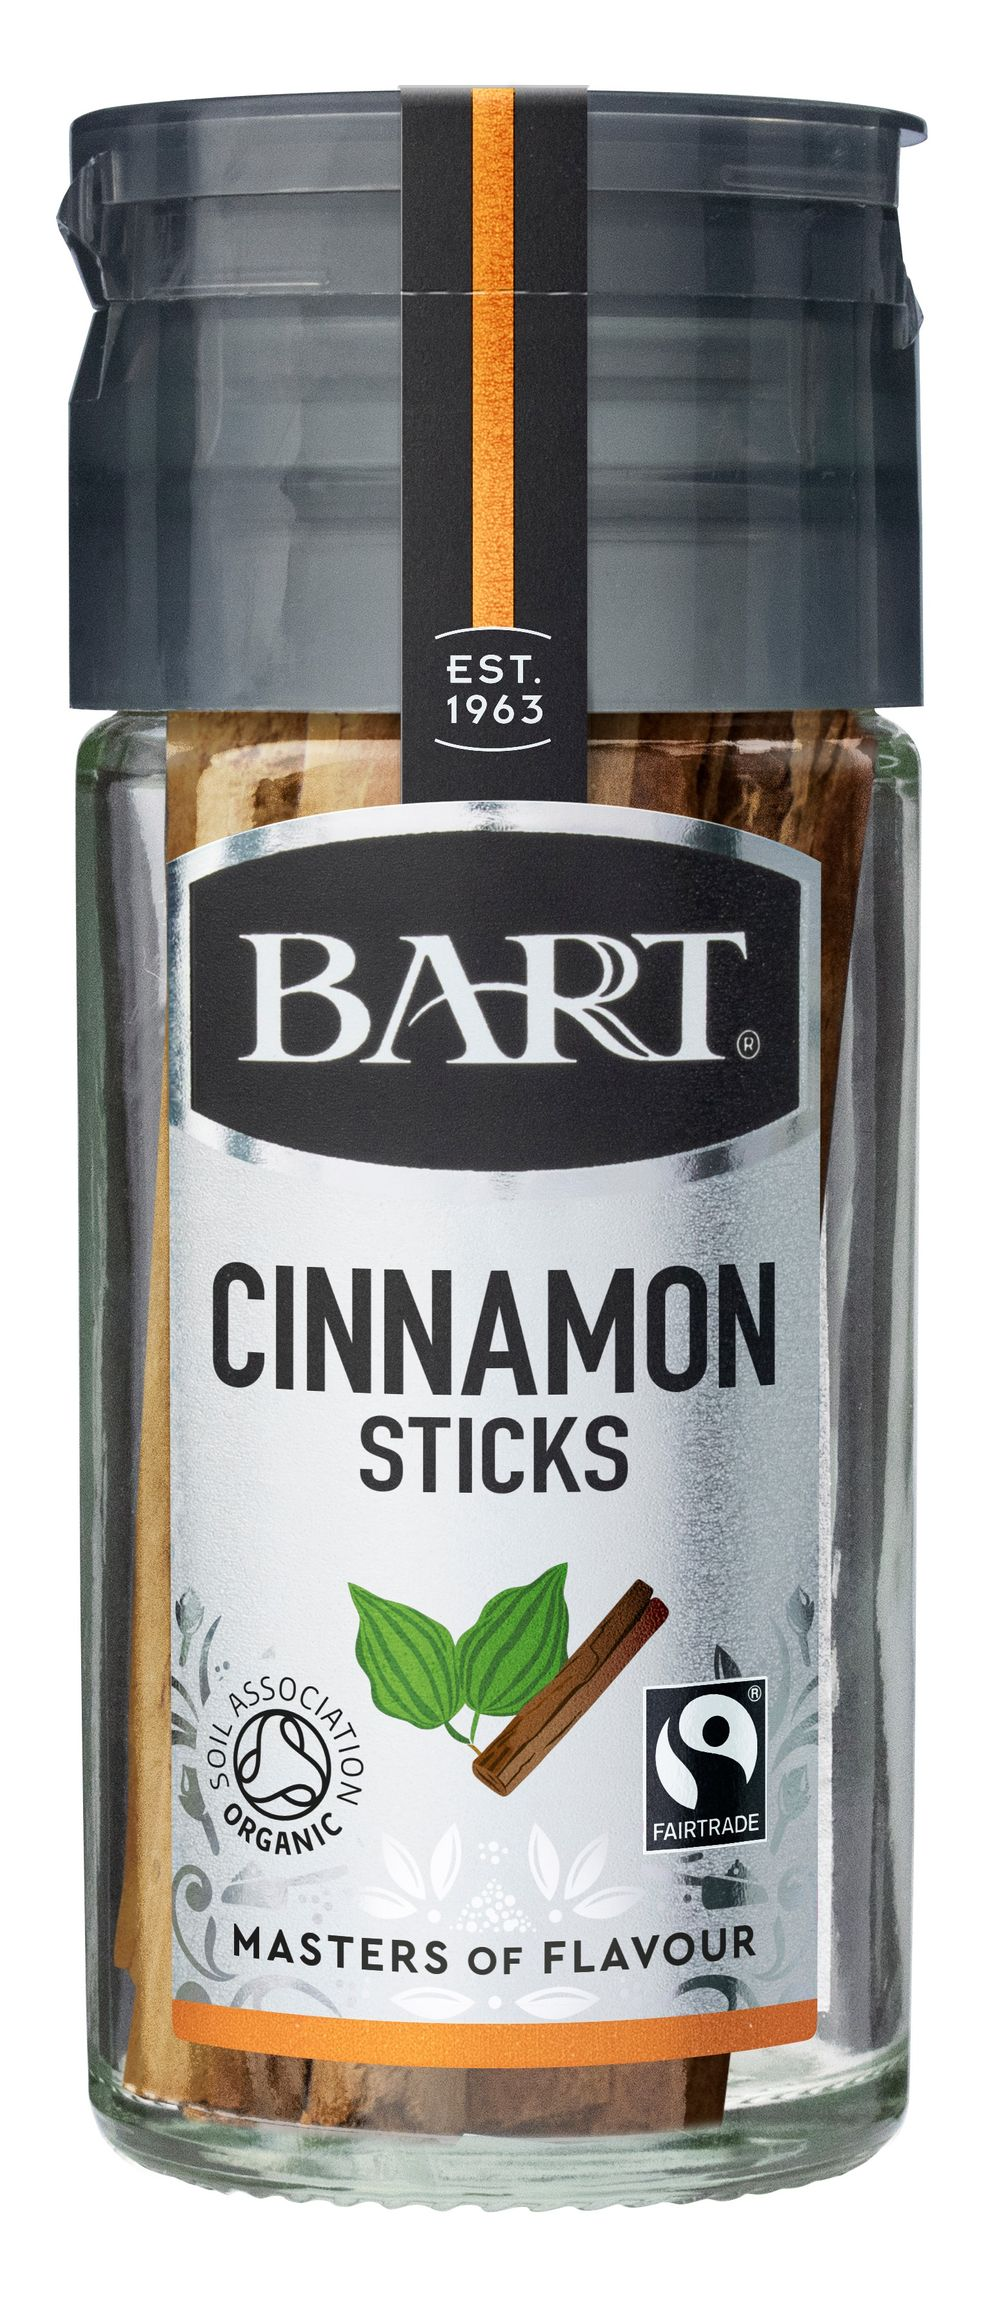 Cinnamon Sticks (Fairtrade Organic)